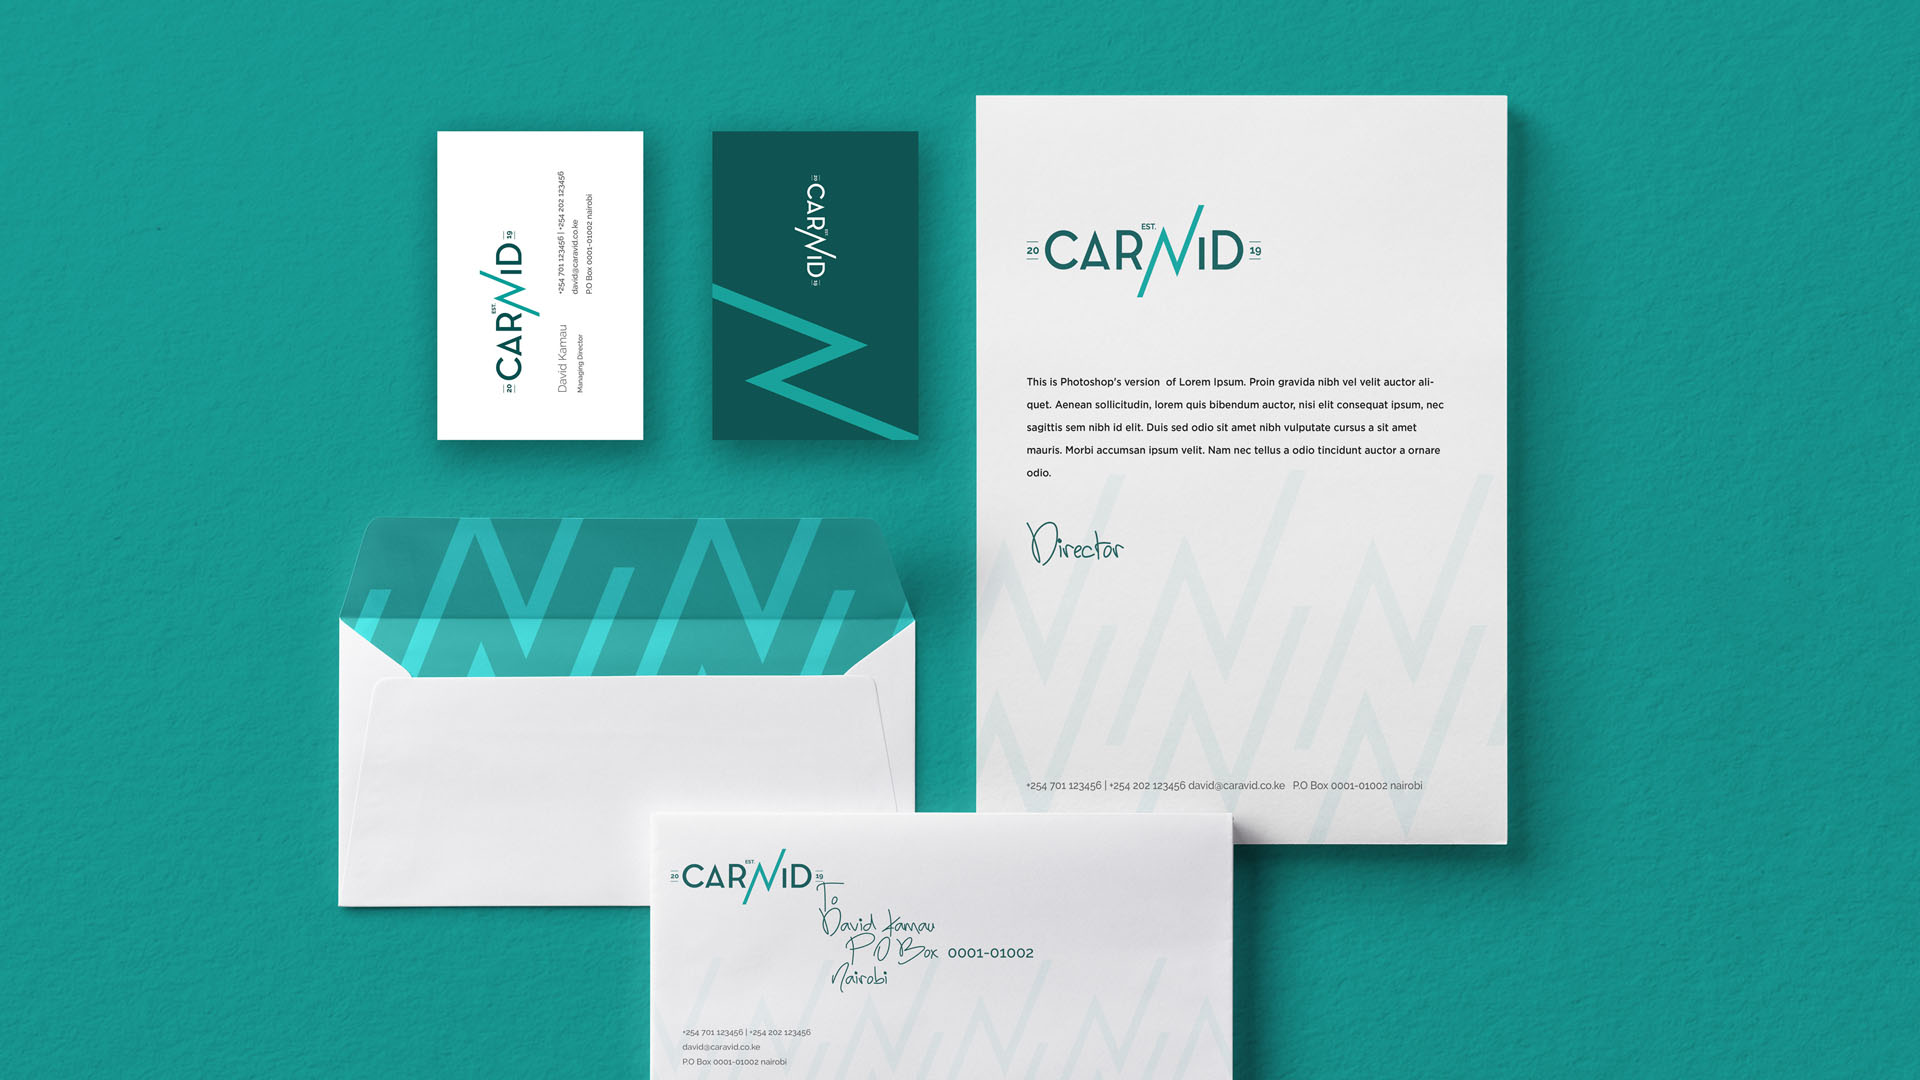 aravid-Envelop e Deigned by Jabari Creative Studios